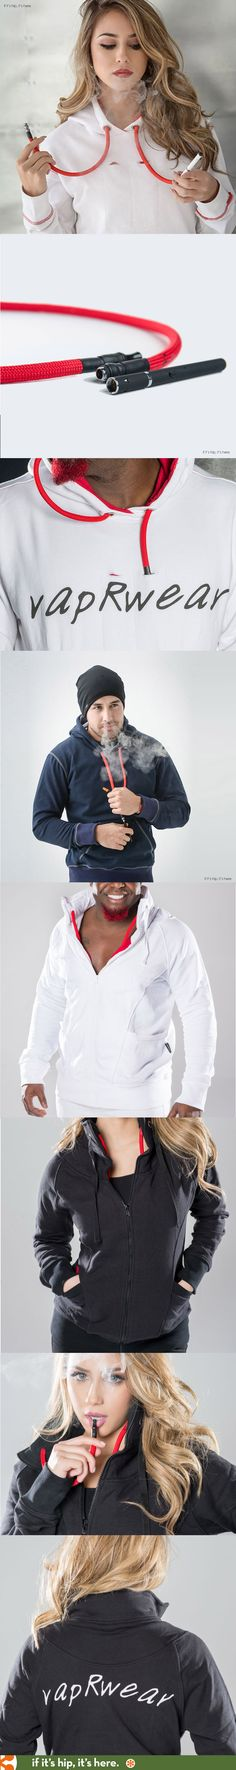 VapRwear, a line of hoodies and jackets that conceals an e-cig vape system.